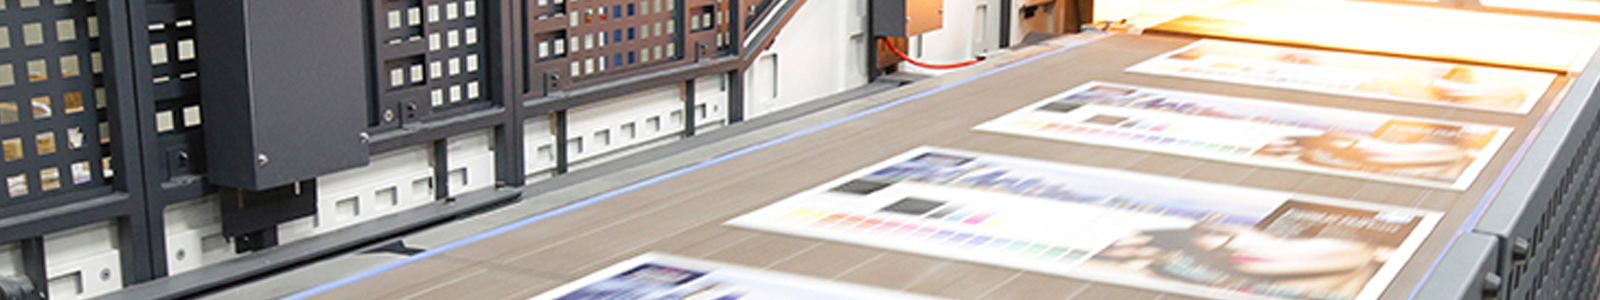 Digital Print Supply Chain BoxMaker